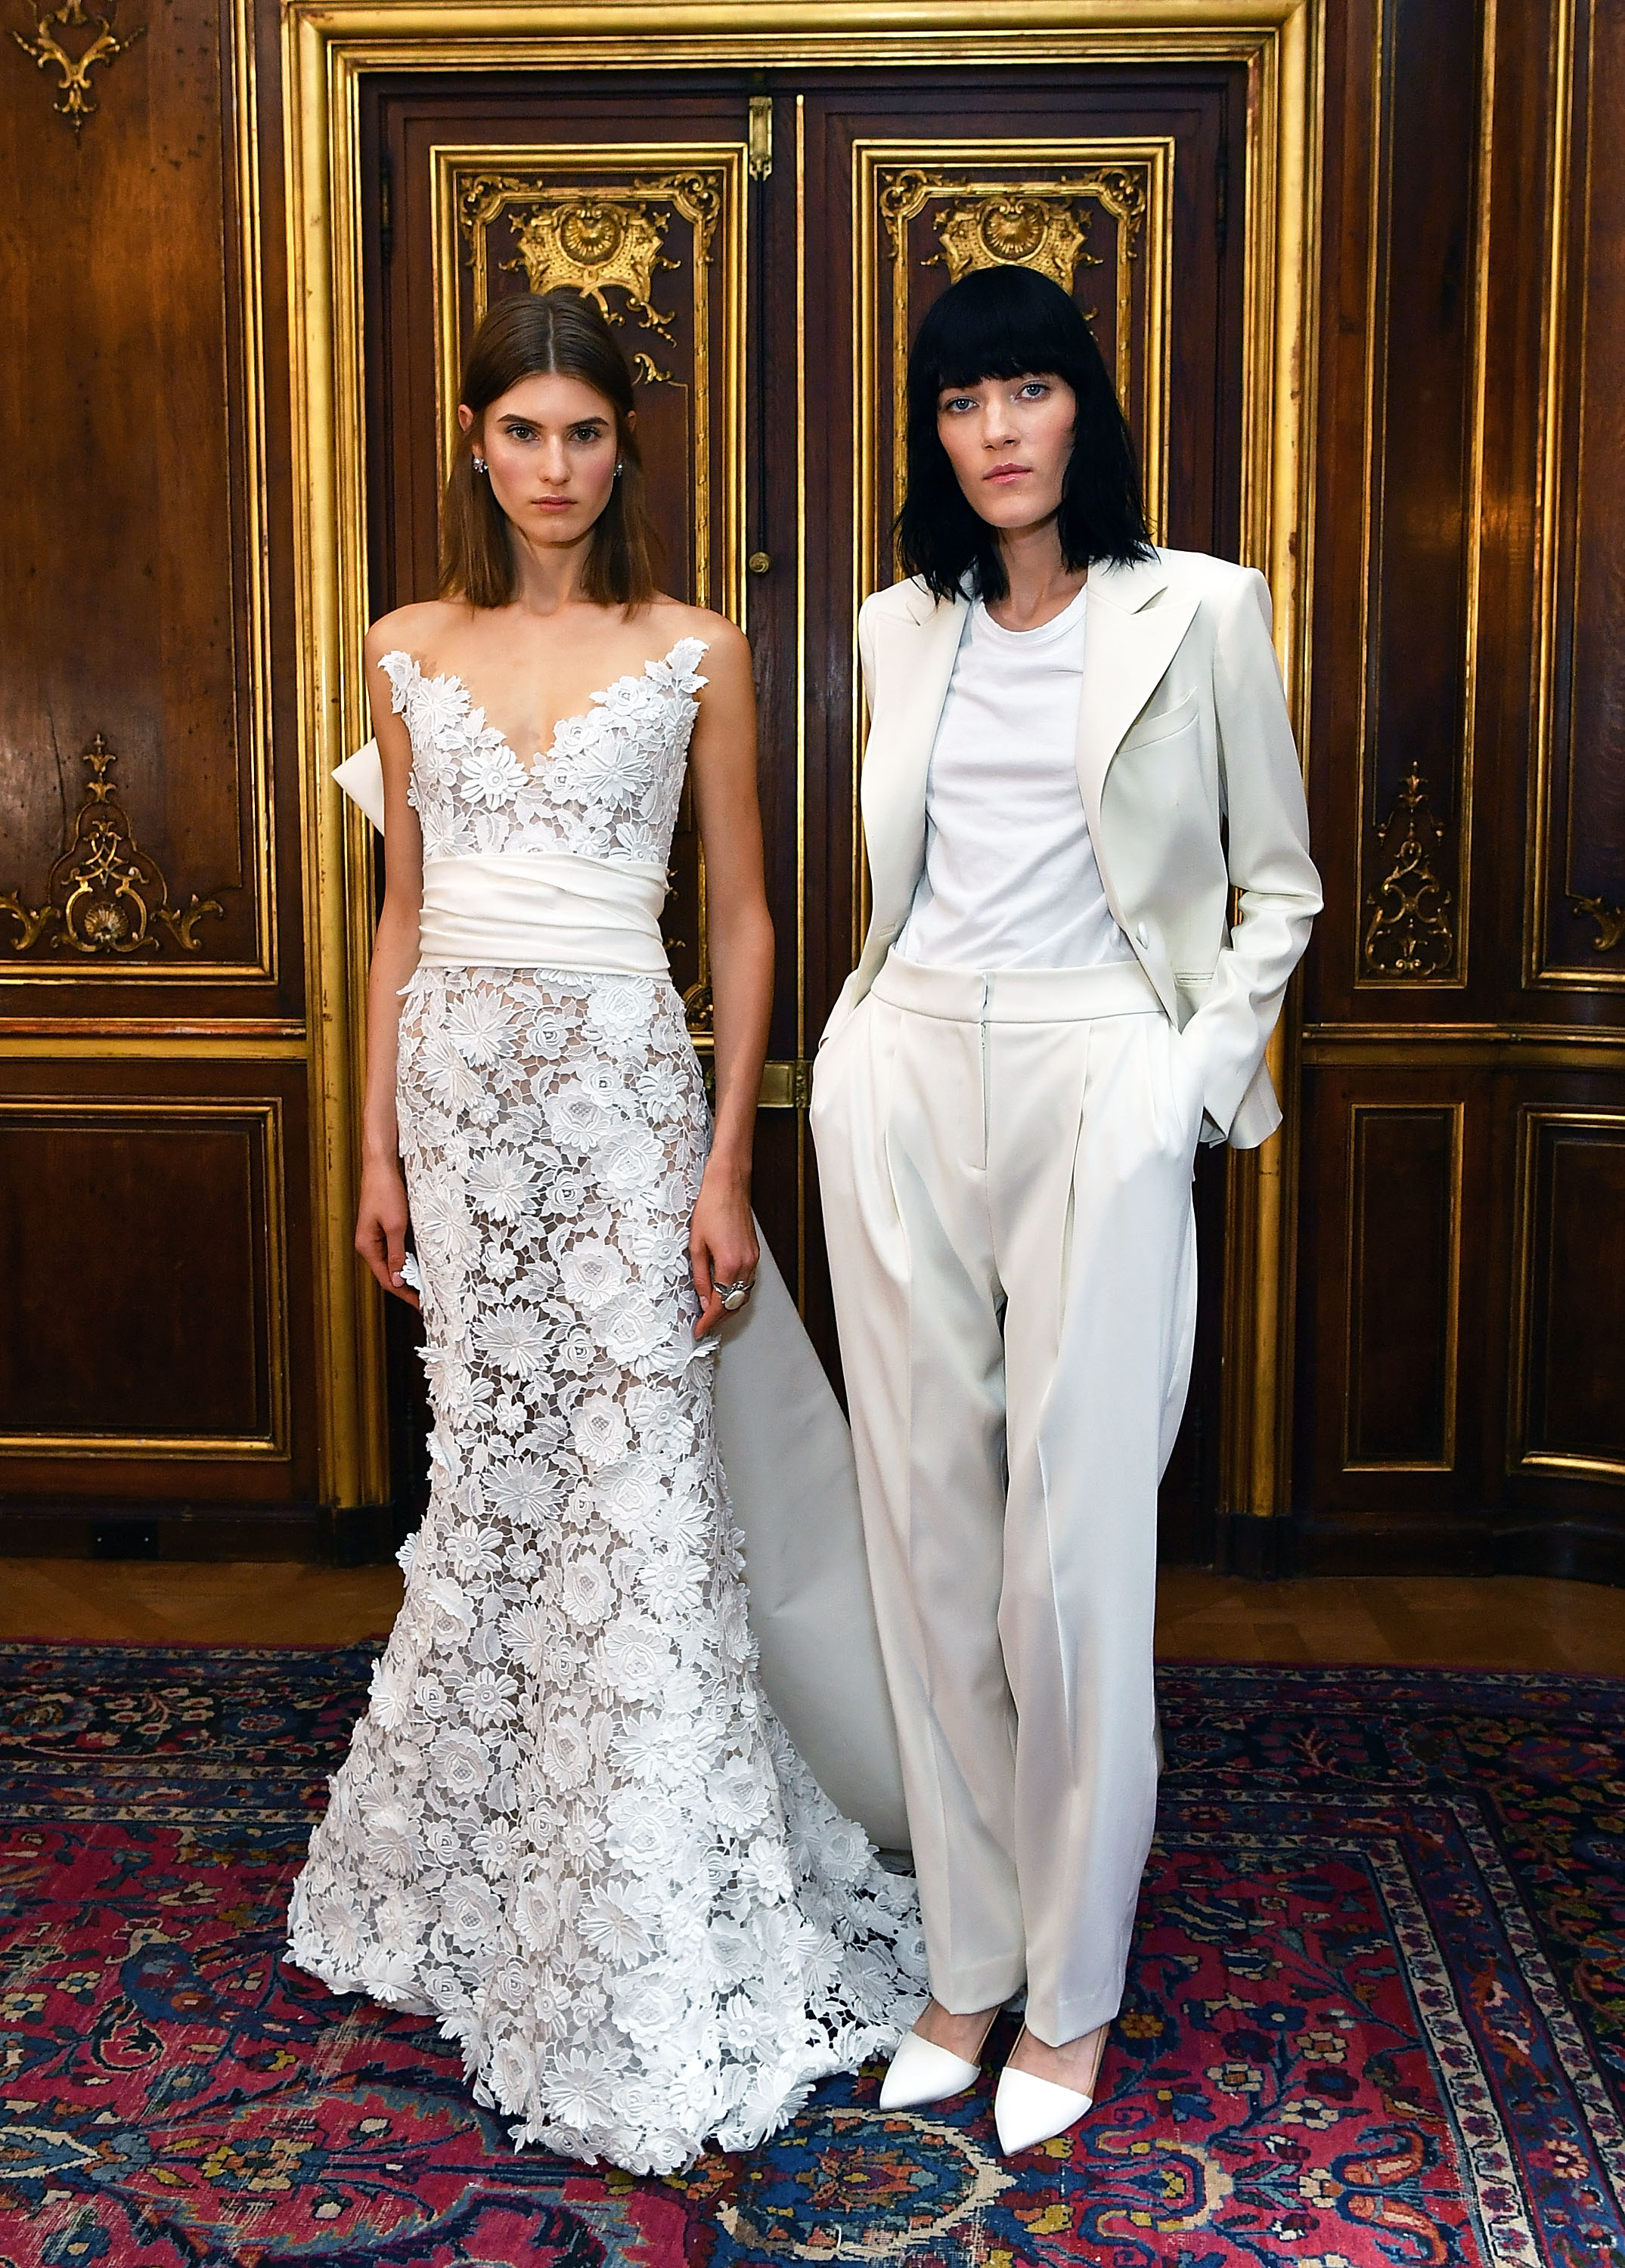 "<p>Attention prospective contestants for the next season of <a href=""http://style.nine.com.au/2017/01/25/14/44/married-at-first-sight-wedding-gowns-dresses-style-bride"" target=""_blank""><em>Married At First Sight</em></a>. The wedding suit has usually been reserved for grooms but at New York Bridal Fashion Week we spotted an increase in the number of white trousers and jumpsuits for brides who don't dig dresses.</p> <p>From slouchy styles at Oscar de la Renta, to sleek '60s chic at Viktor and Rolf, here are the perfect choices for the bride who insists on wearing the pants.</p>"